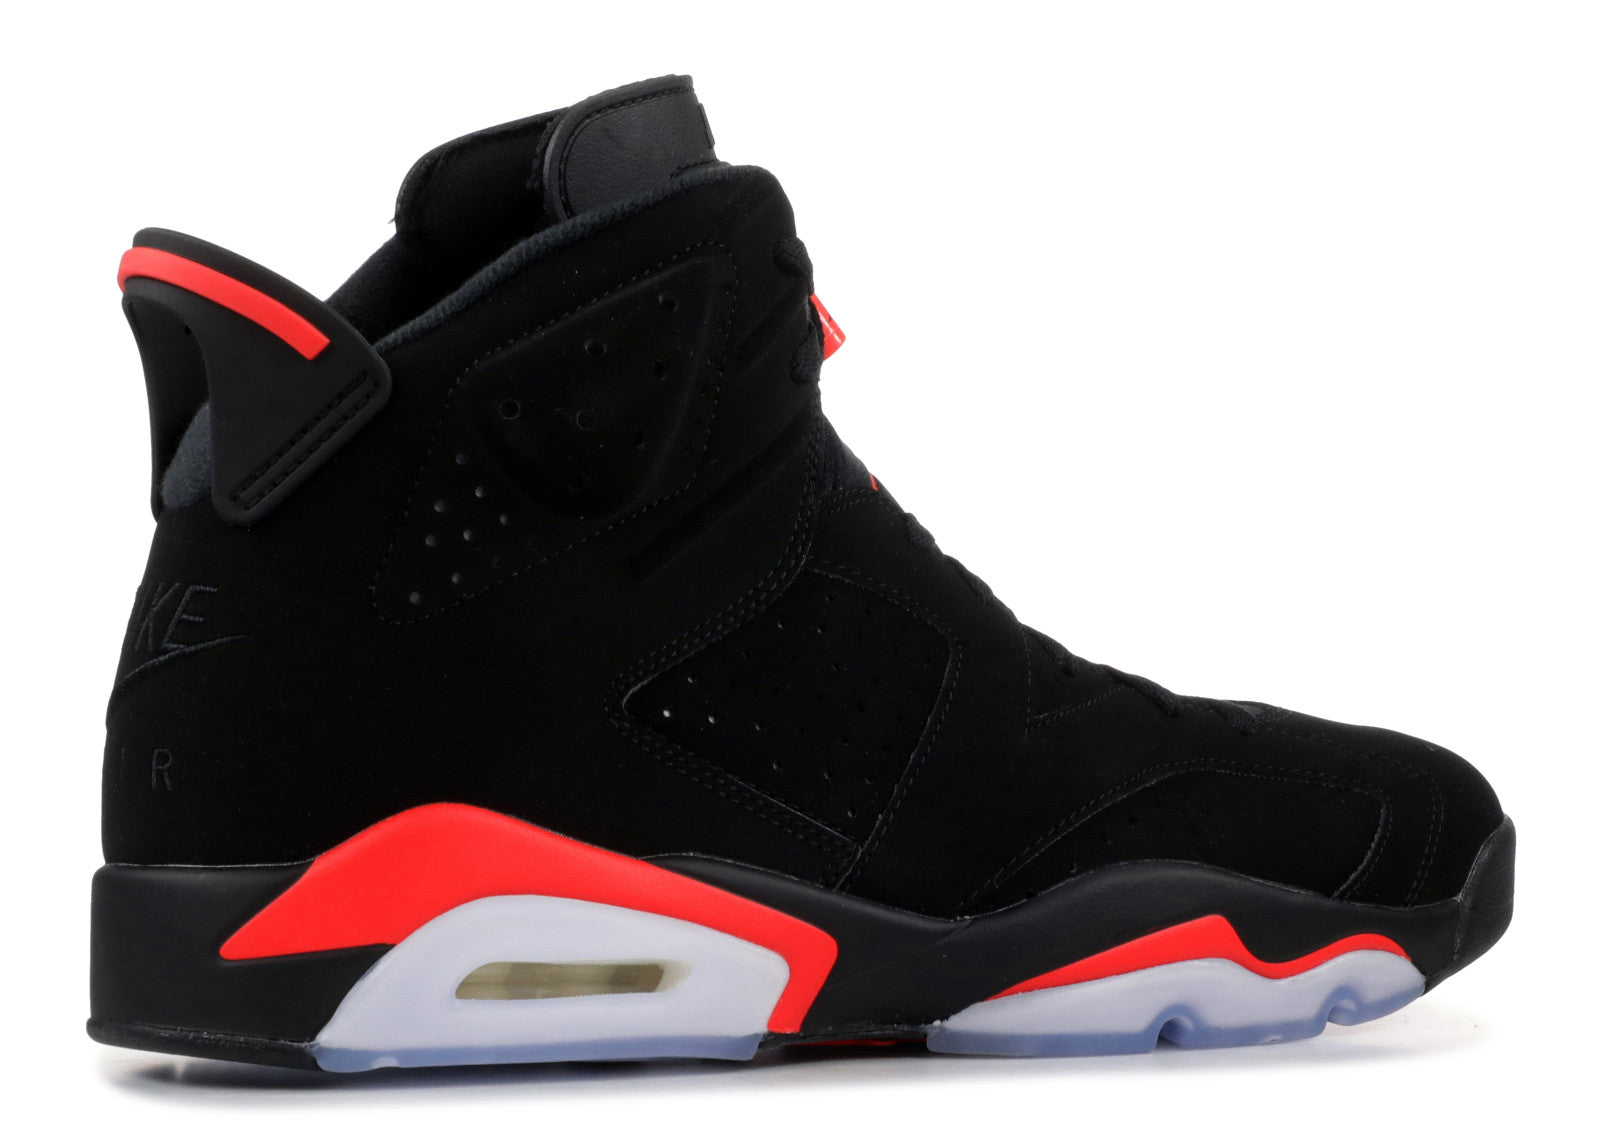 Nike Air Jordan 6 Retro 'Black Infrared 2019'